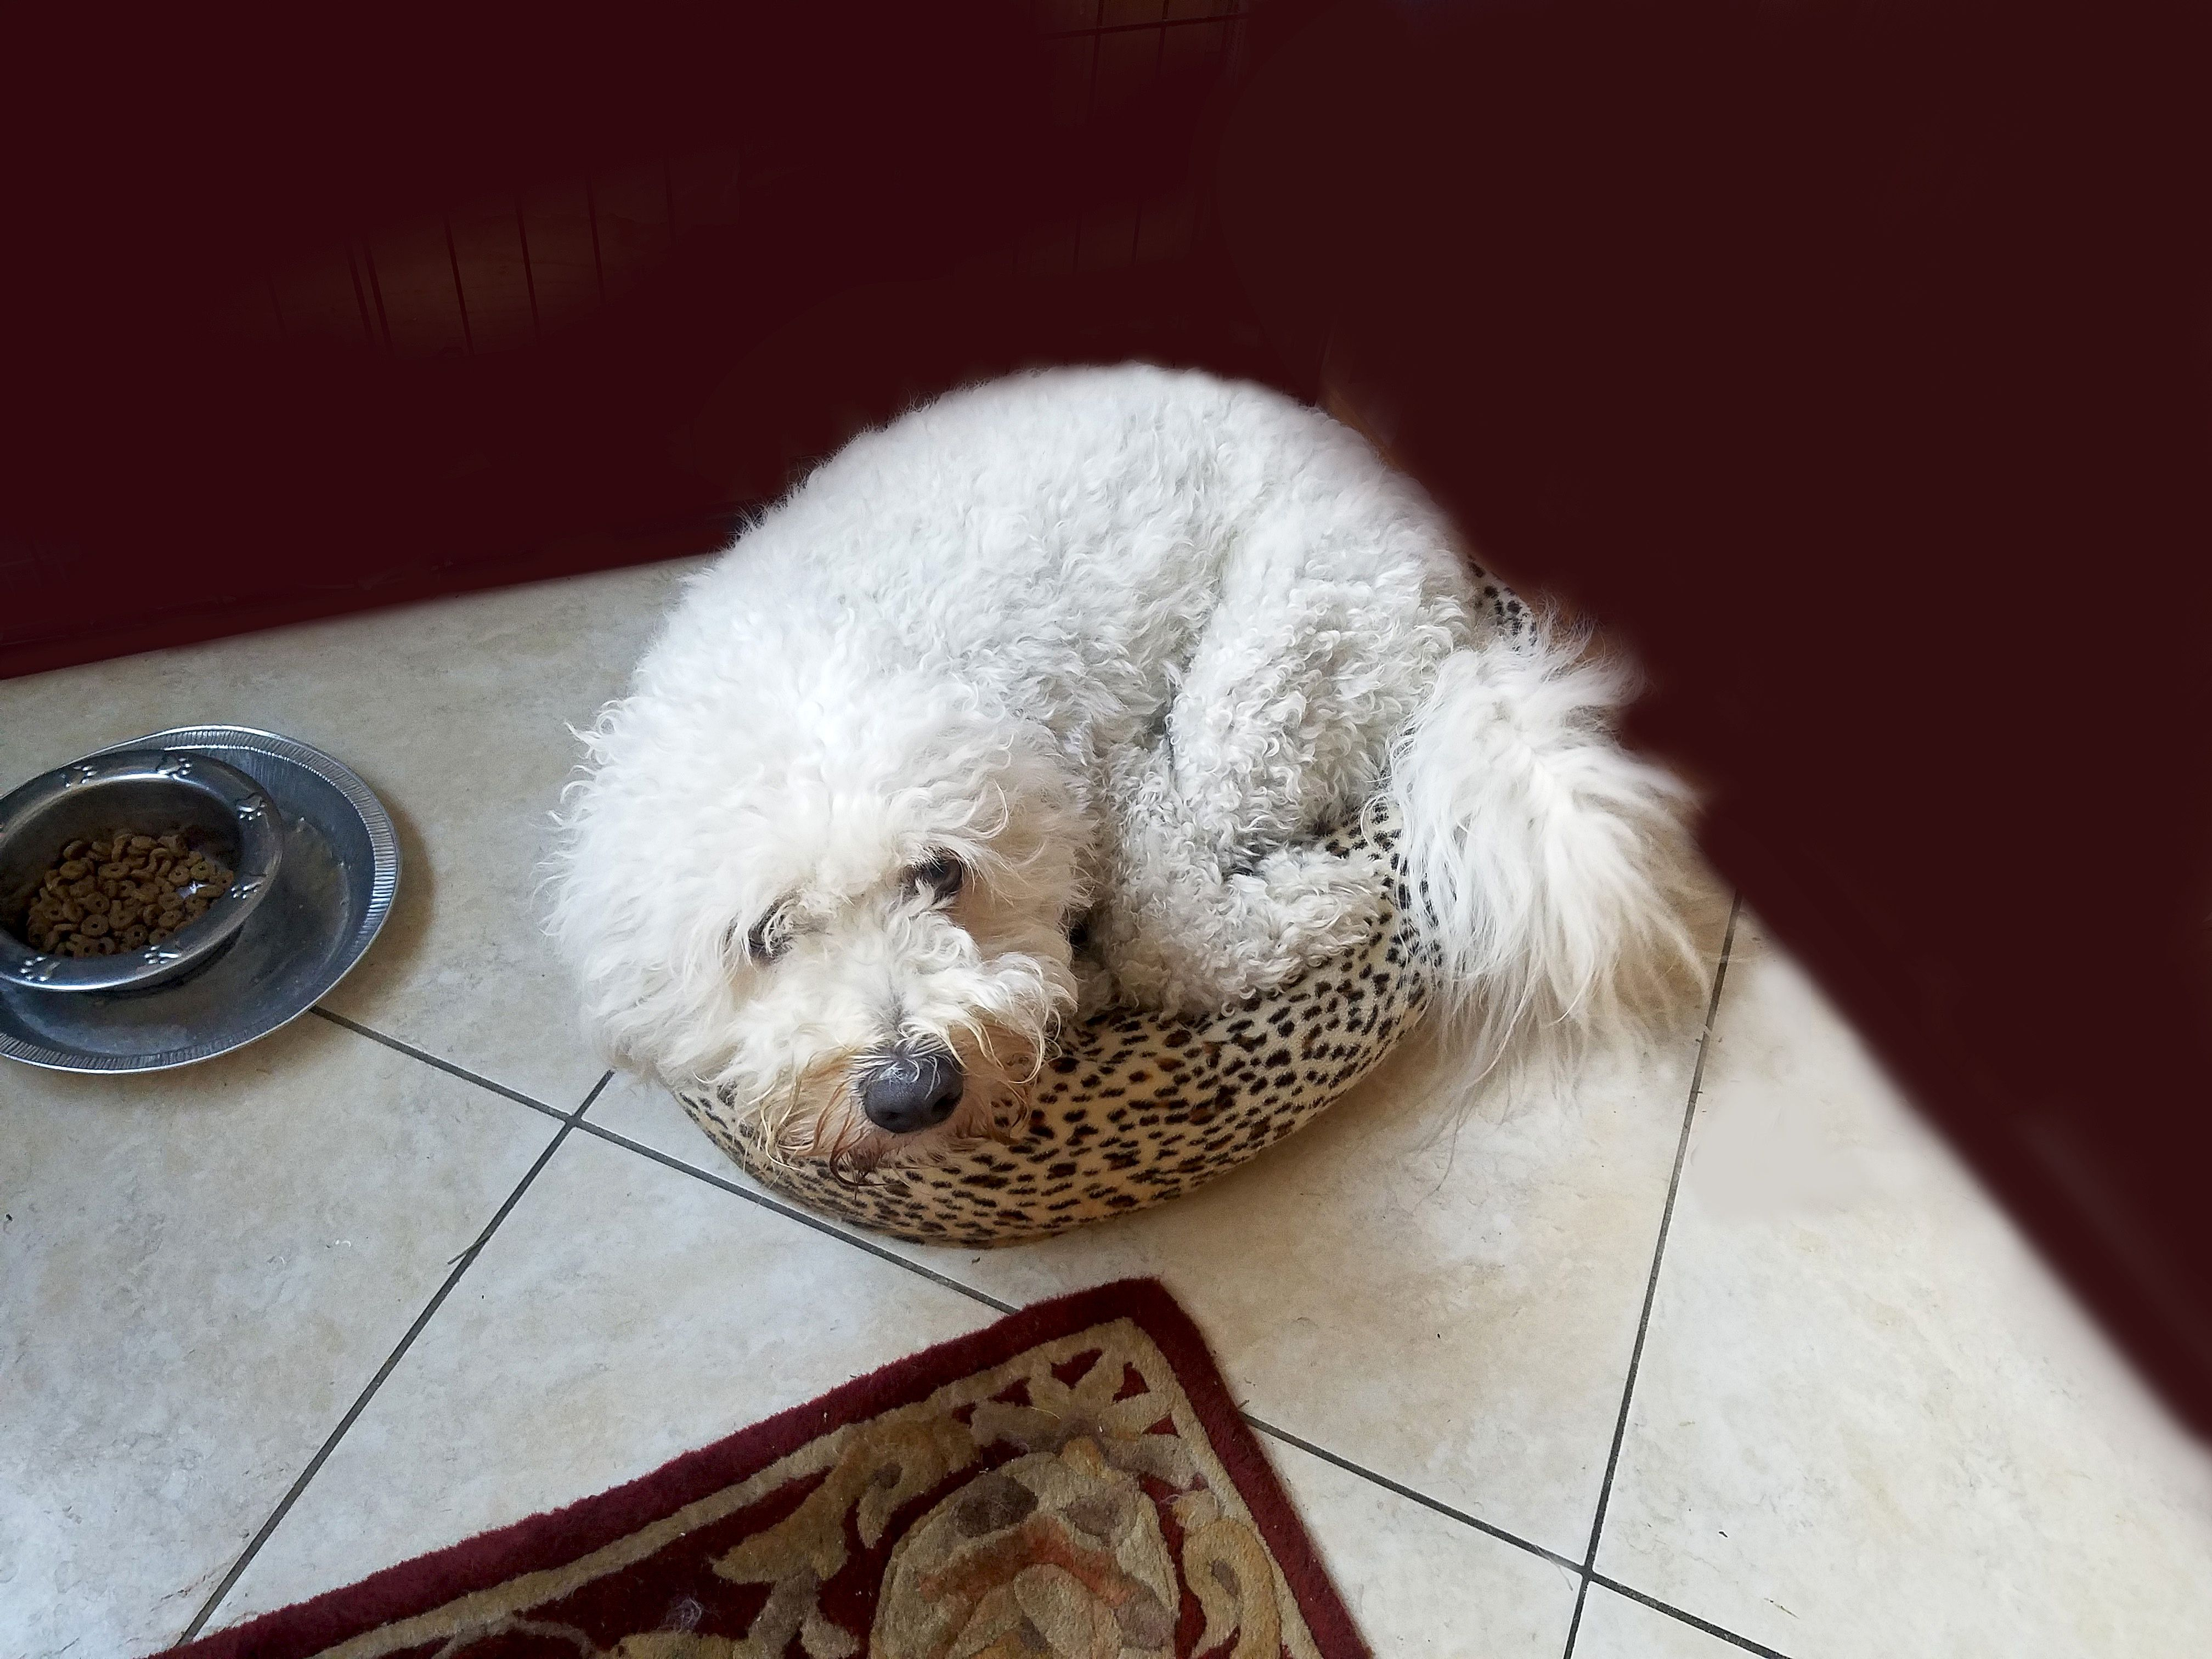 A big dog has squeezed himself into a tiny dog's bed.